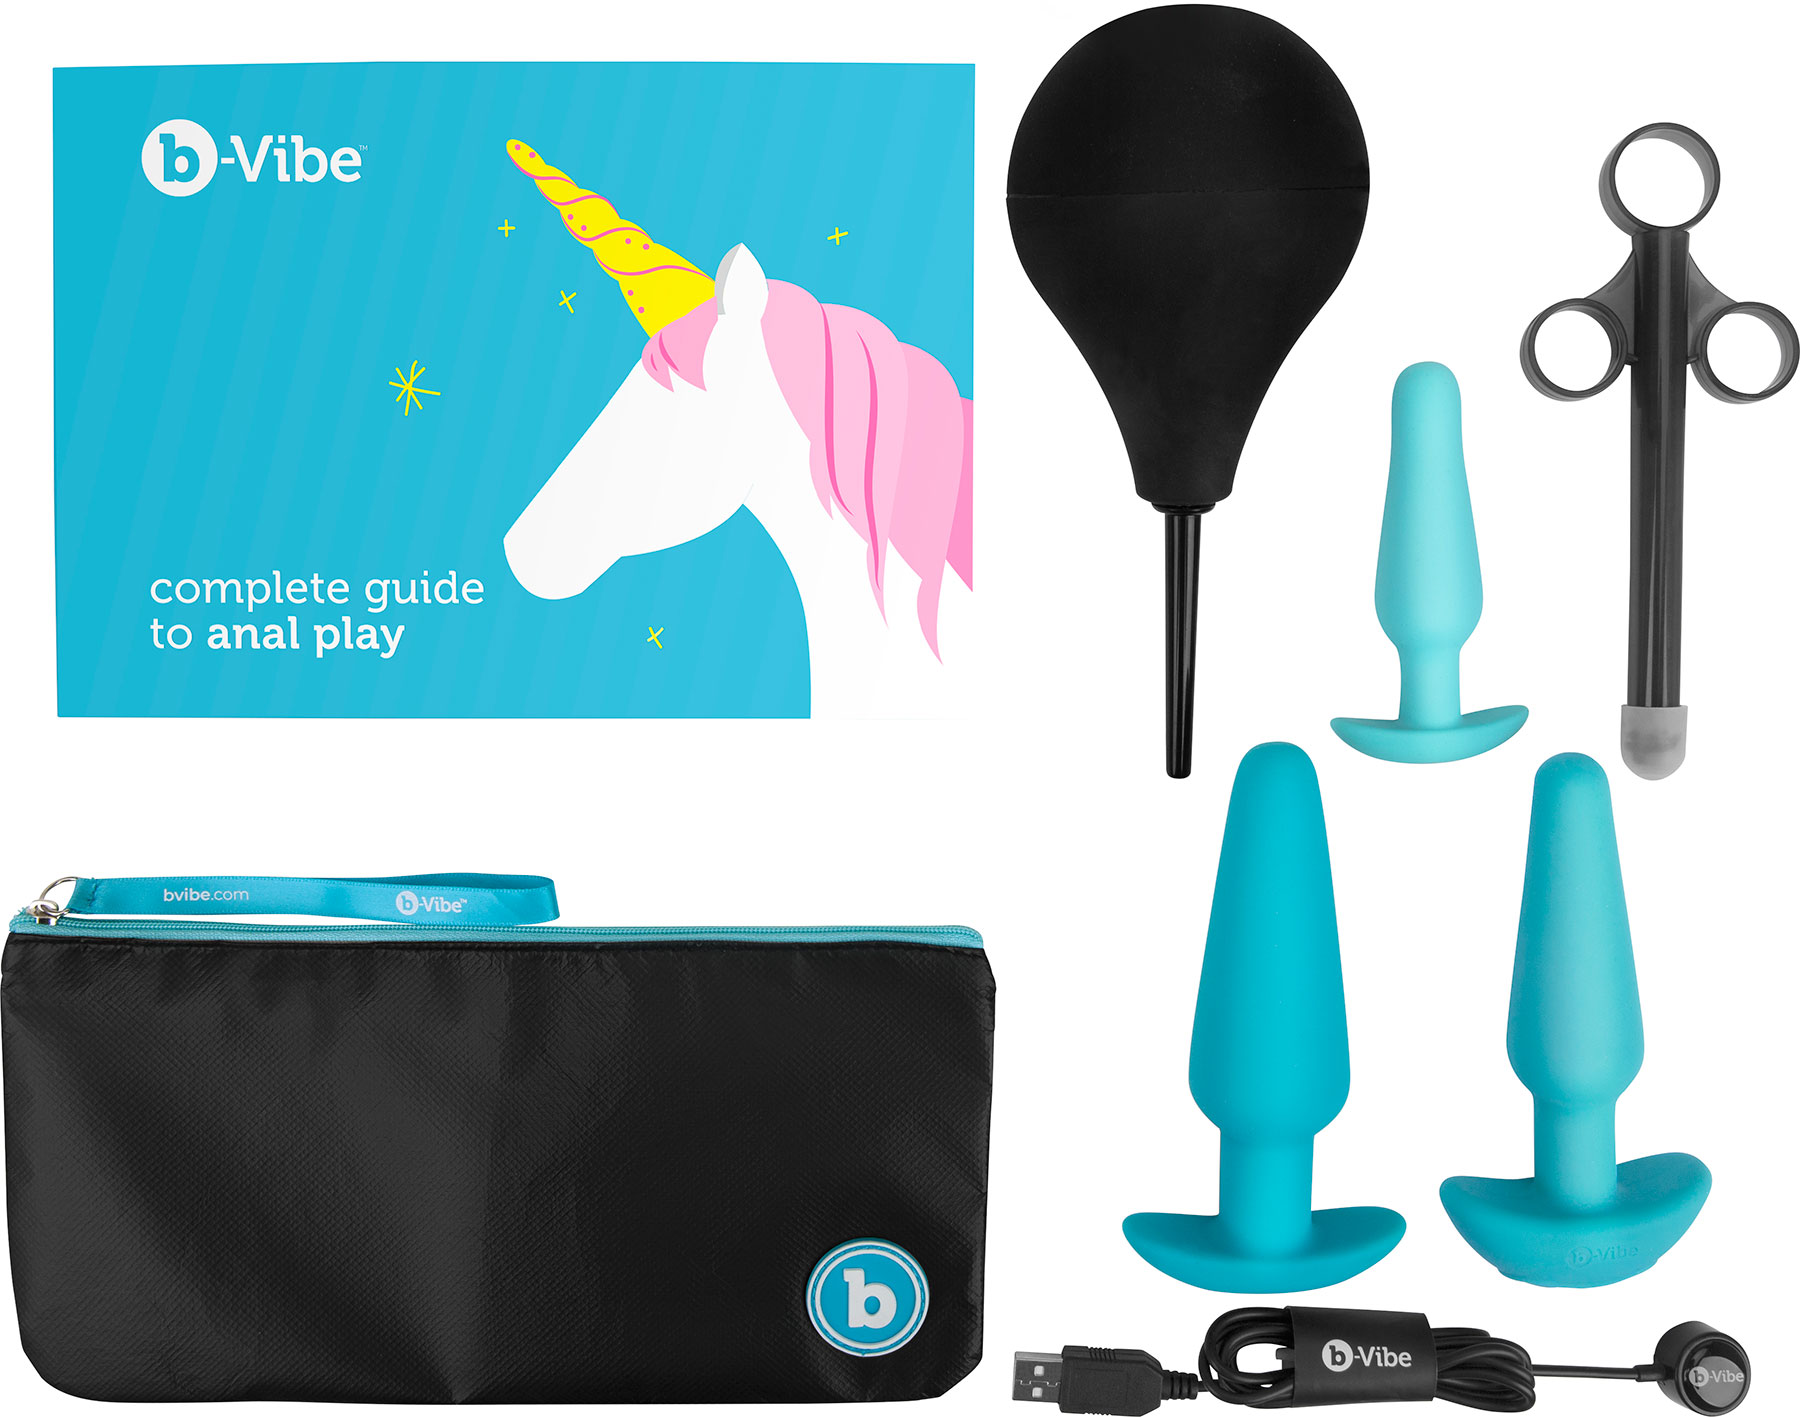 b-Vibe Anal Training & Education Set - What's Included?